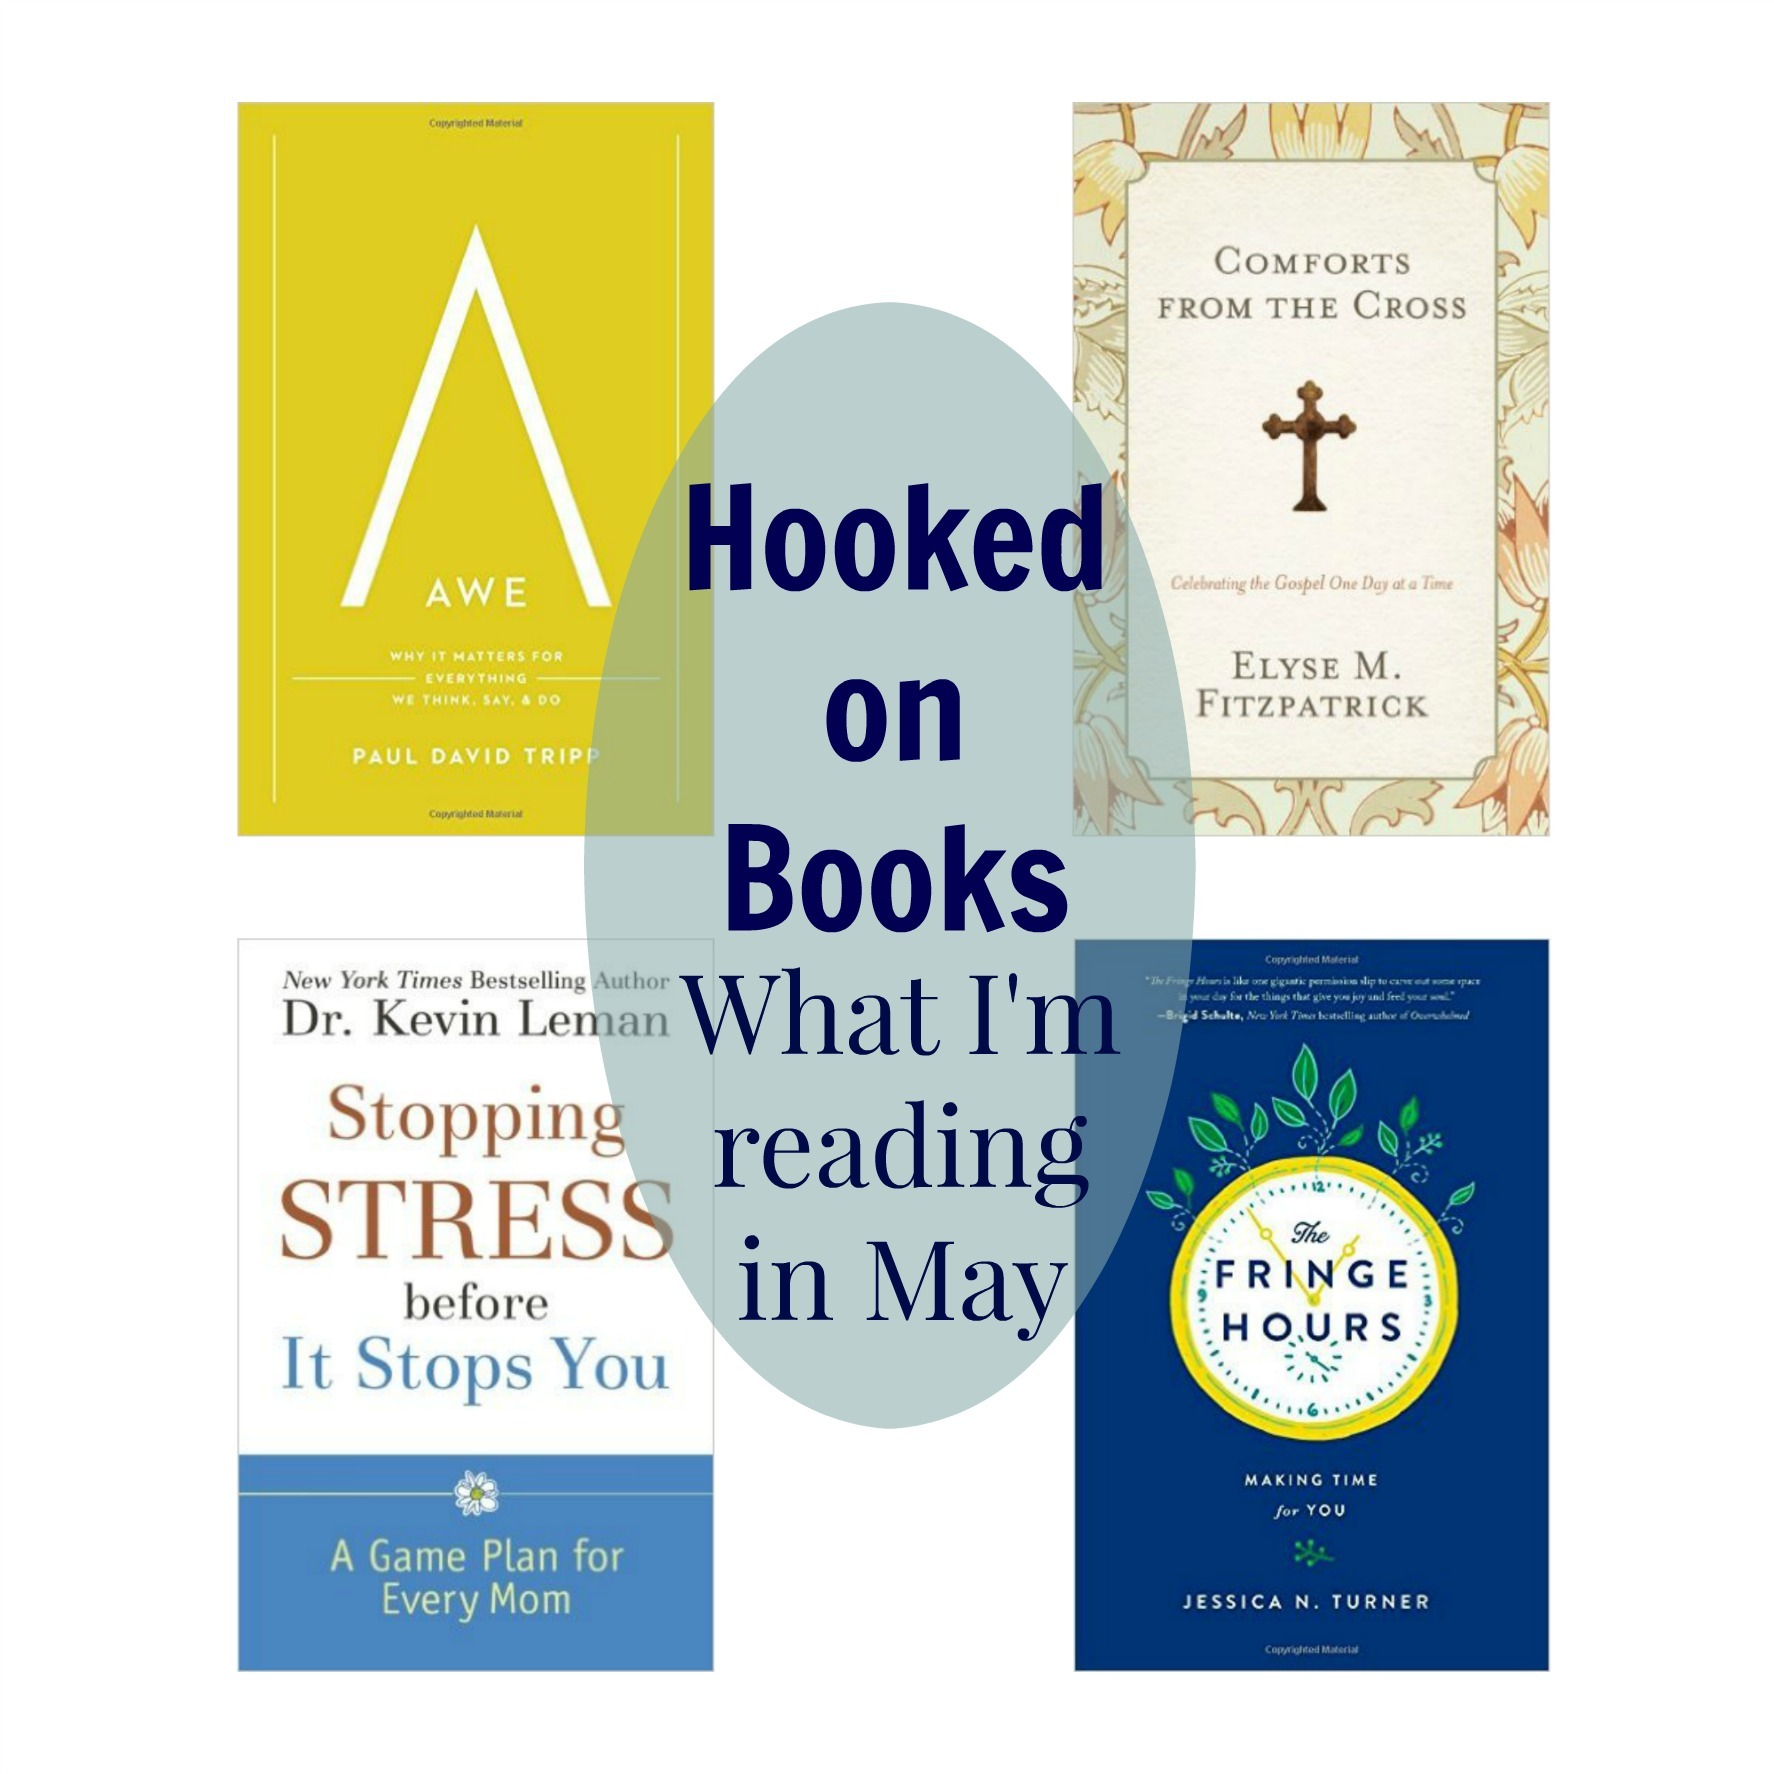 may 2016 hooked books